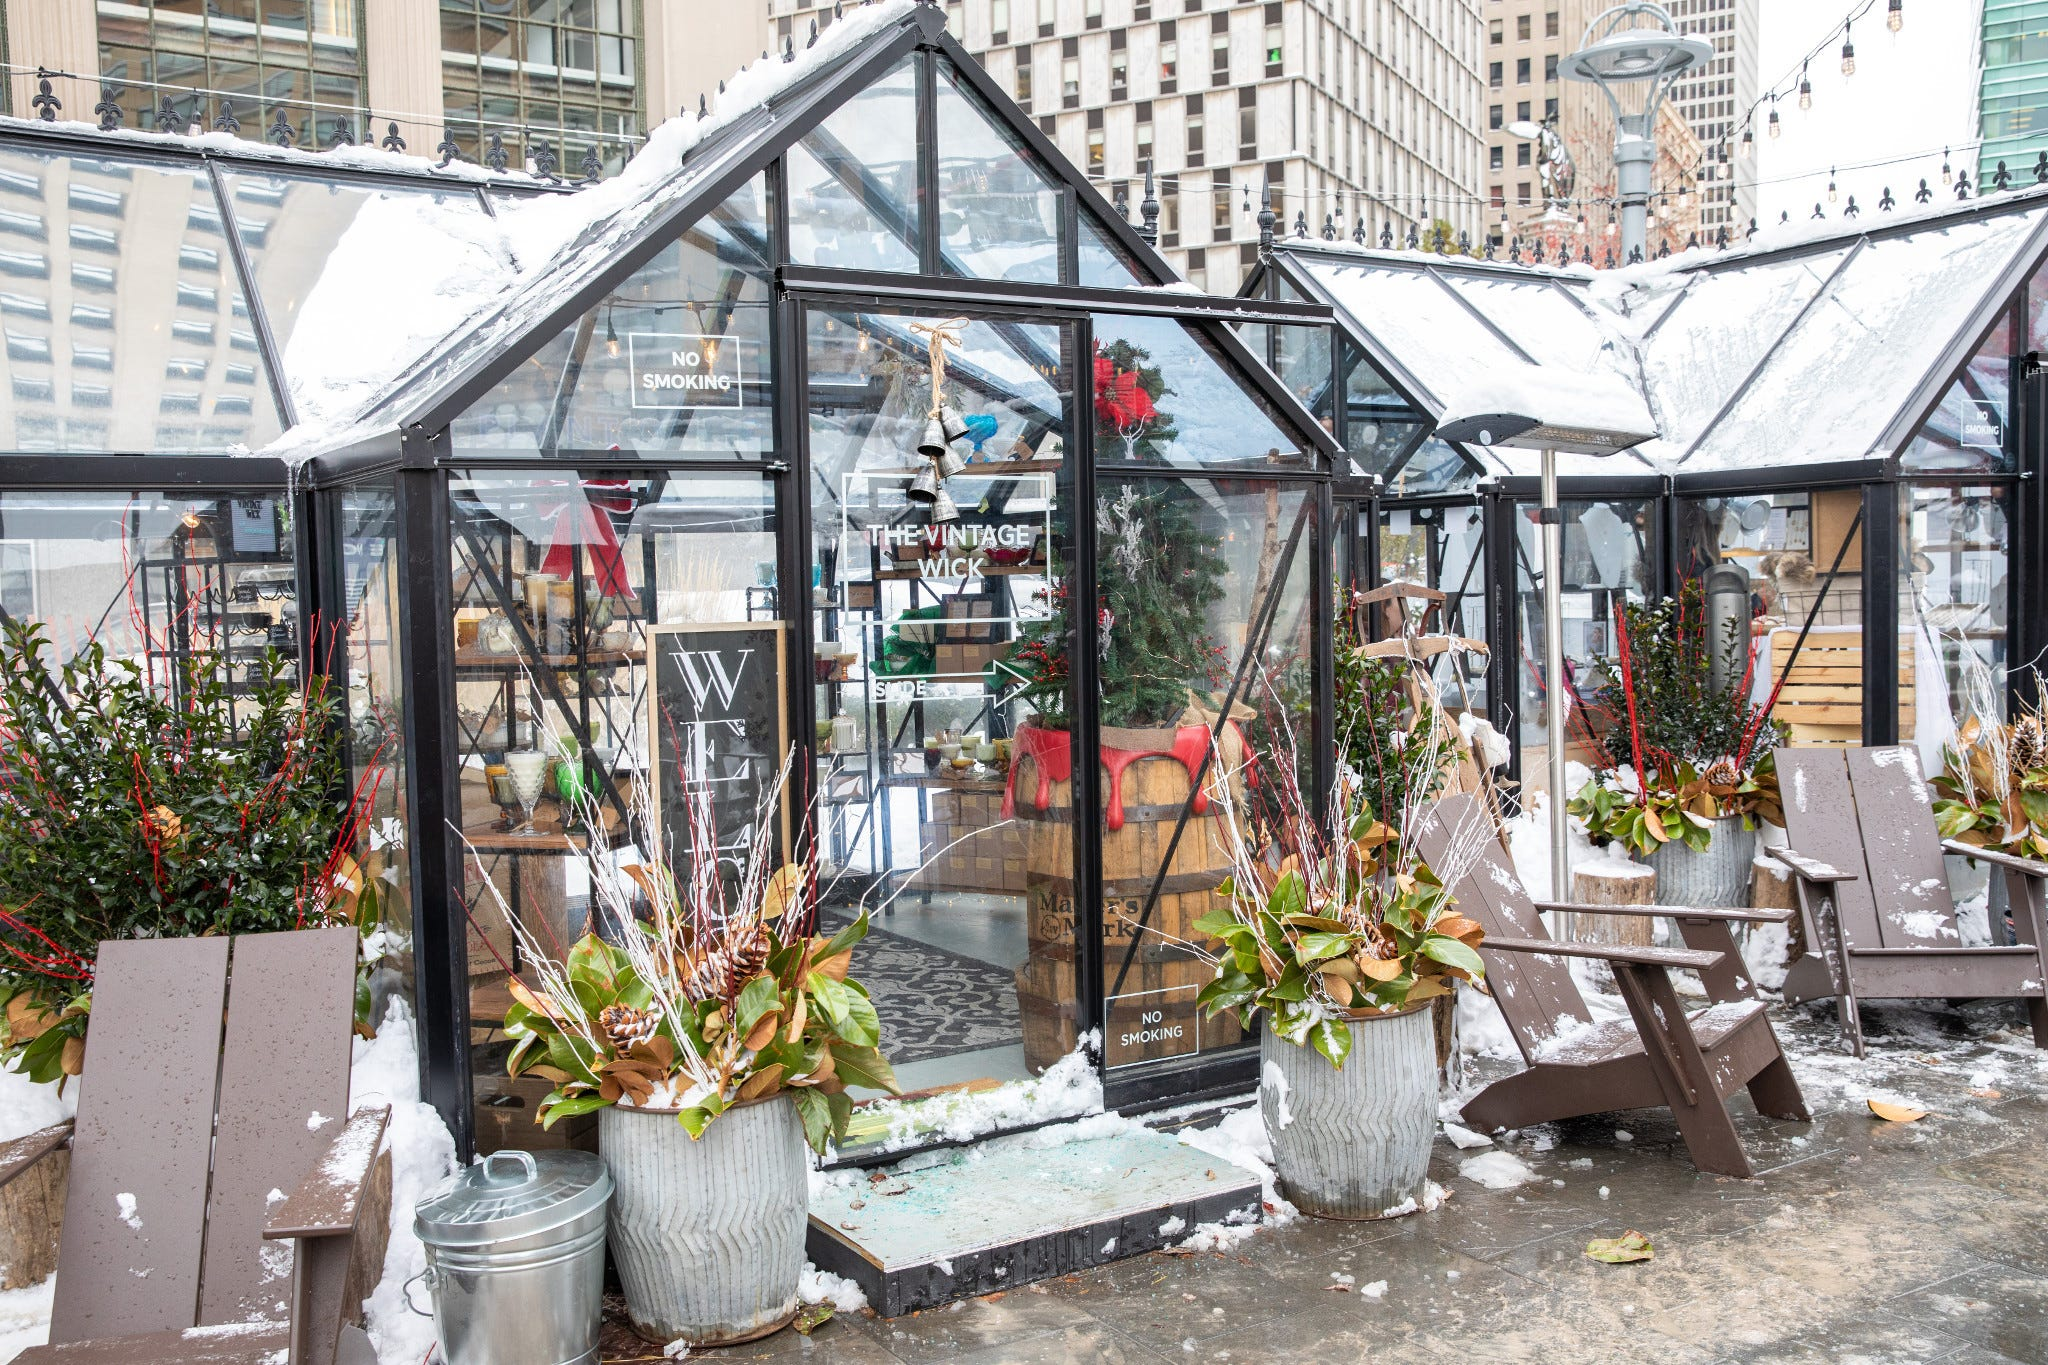 Winter shopping, holiday activities ready for season change in downtown Detroit